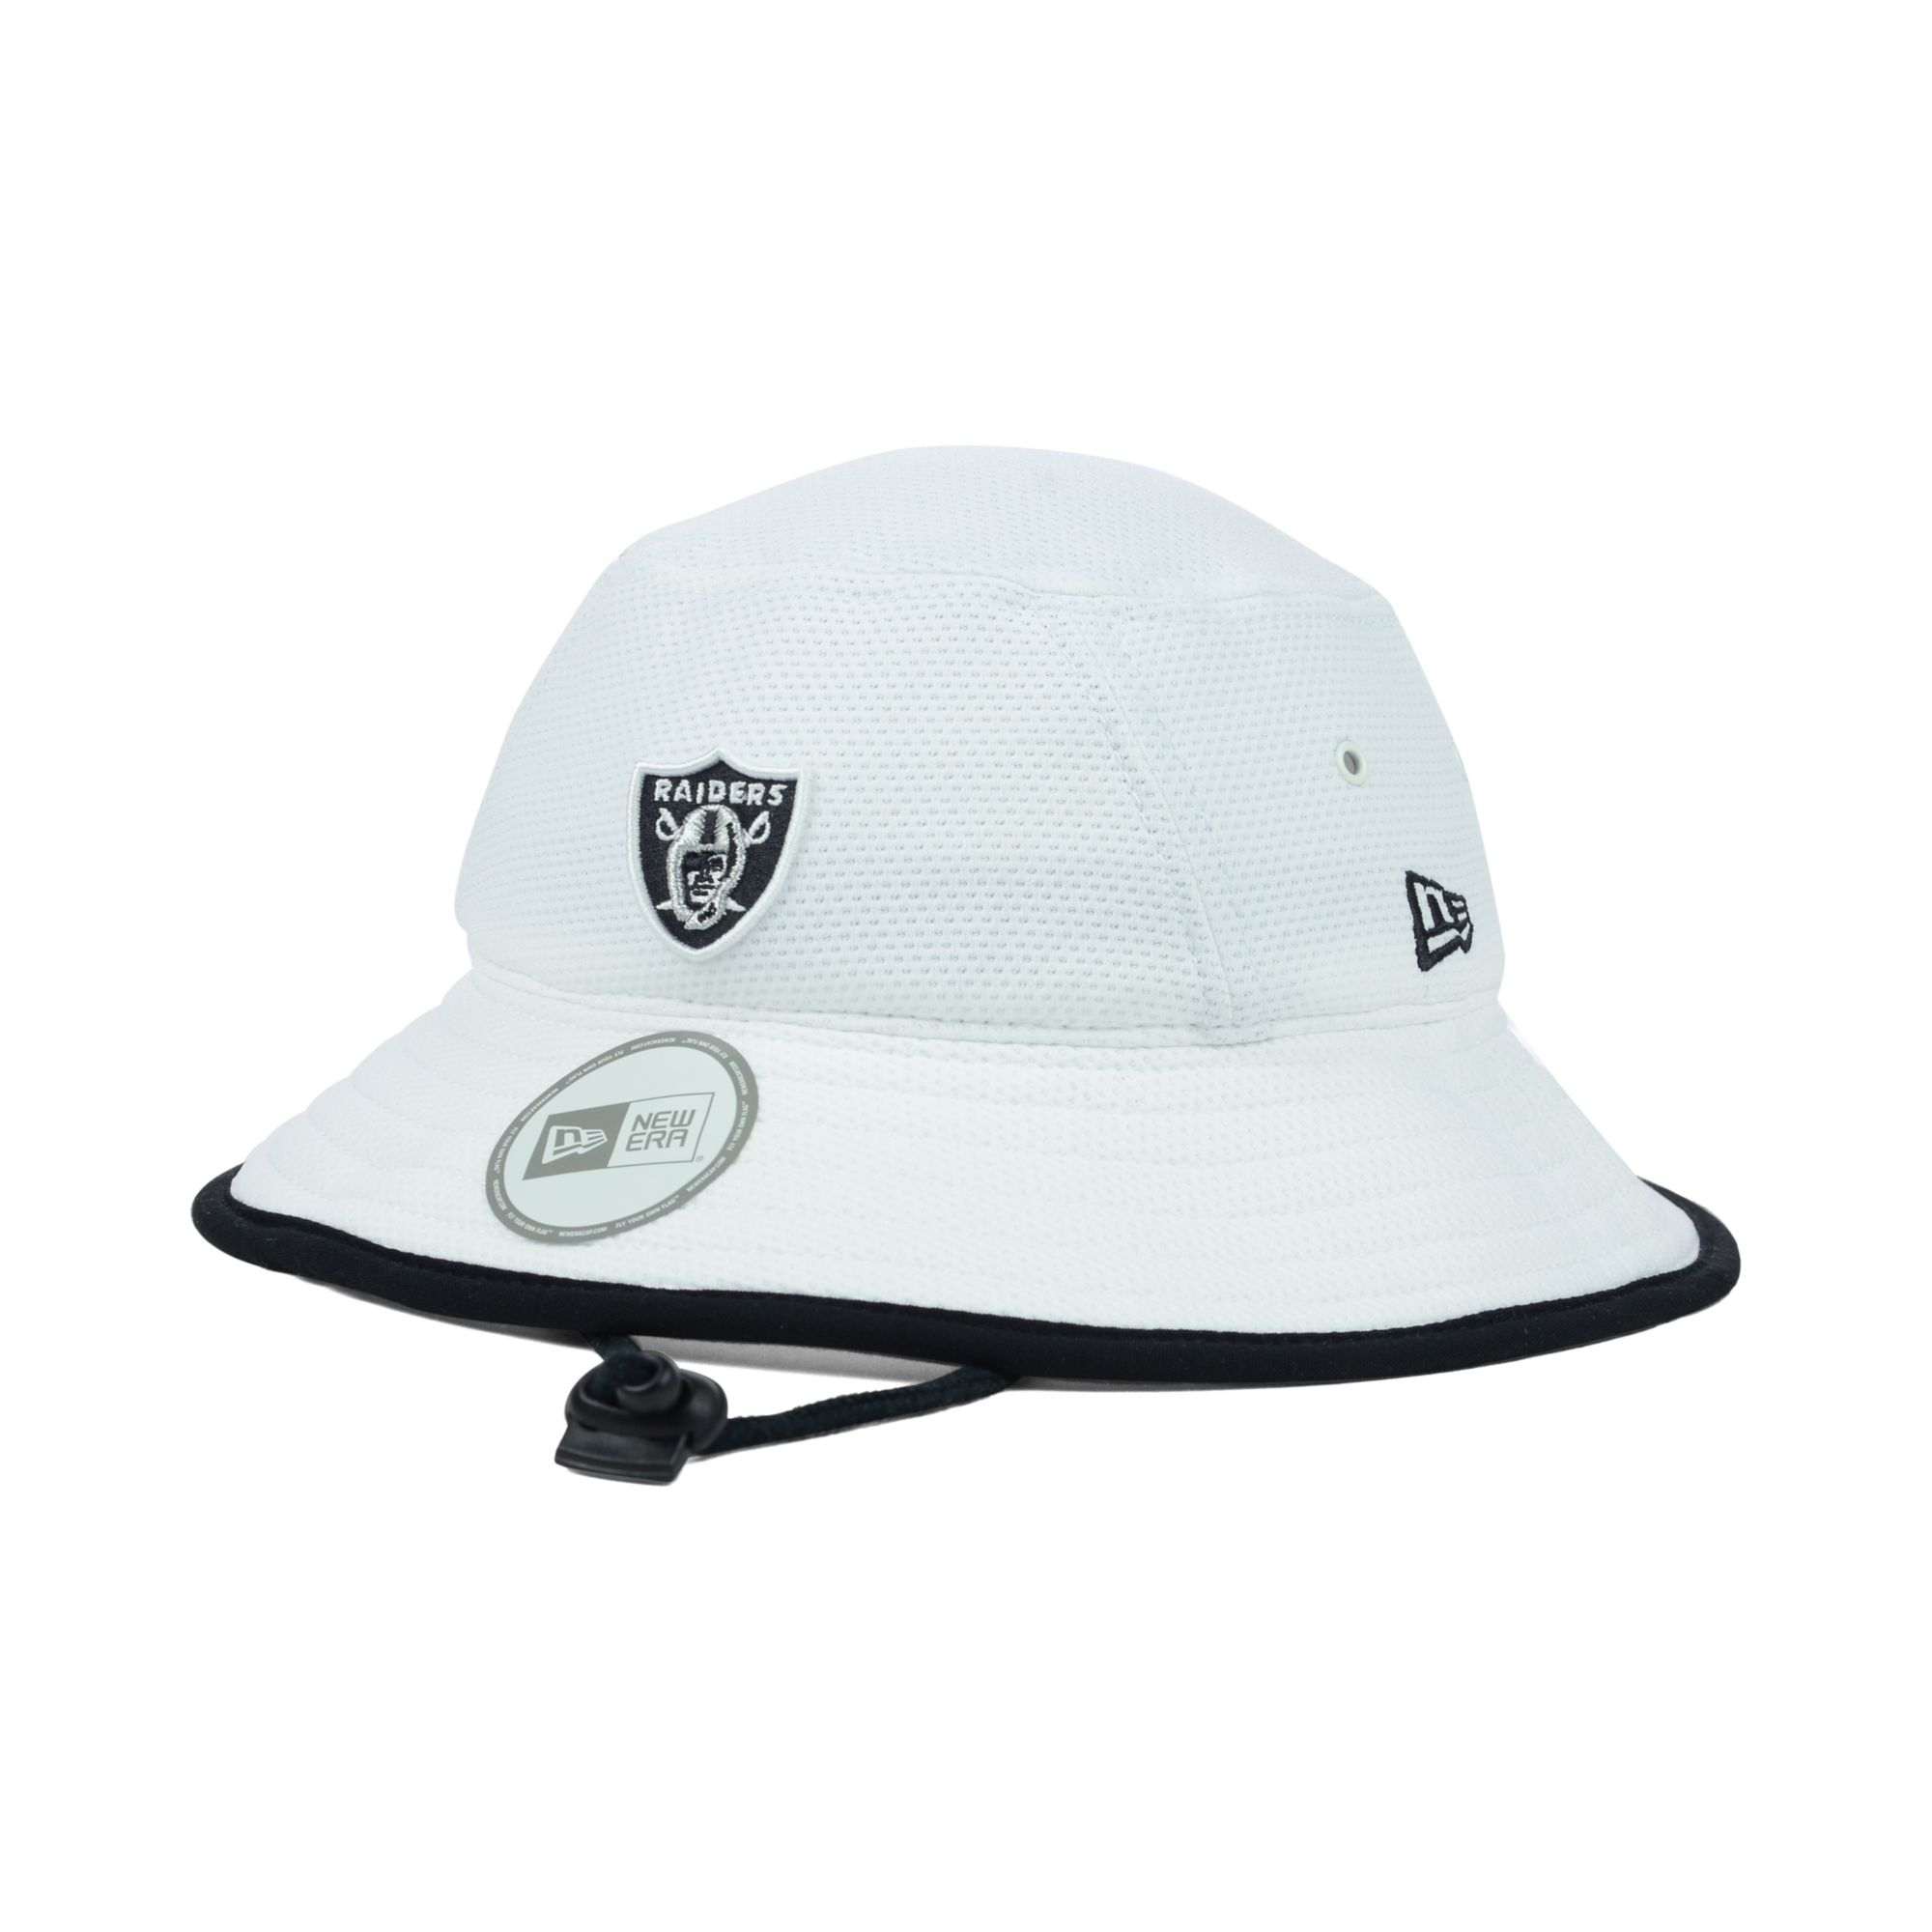 Lyst - KTZ Oakland Raiders Training Camp Bucket Hat in White for Men 78c93692ca2e